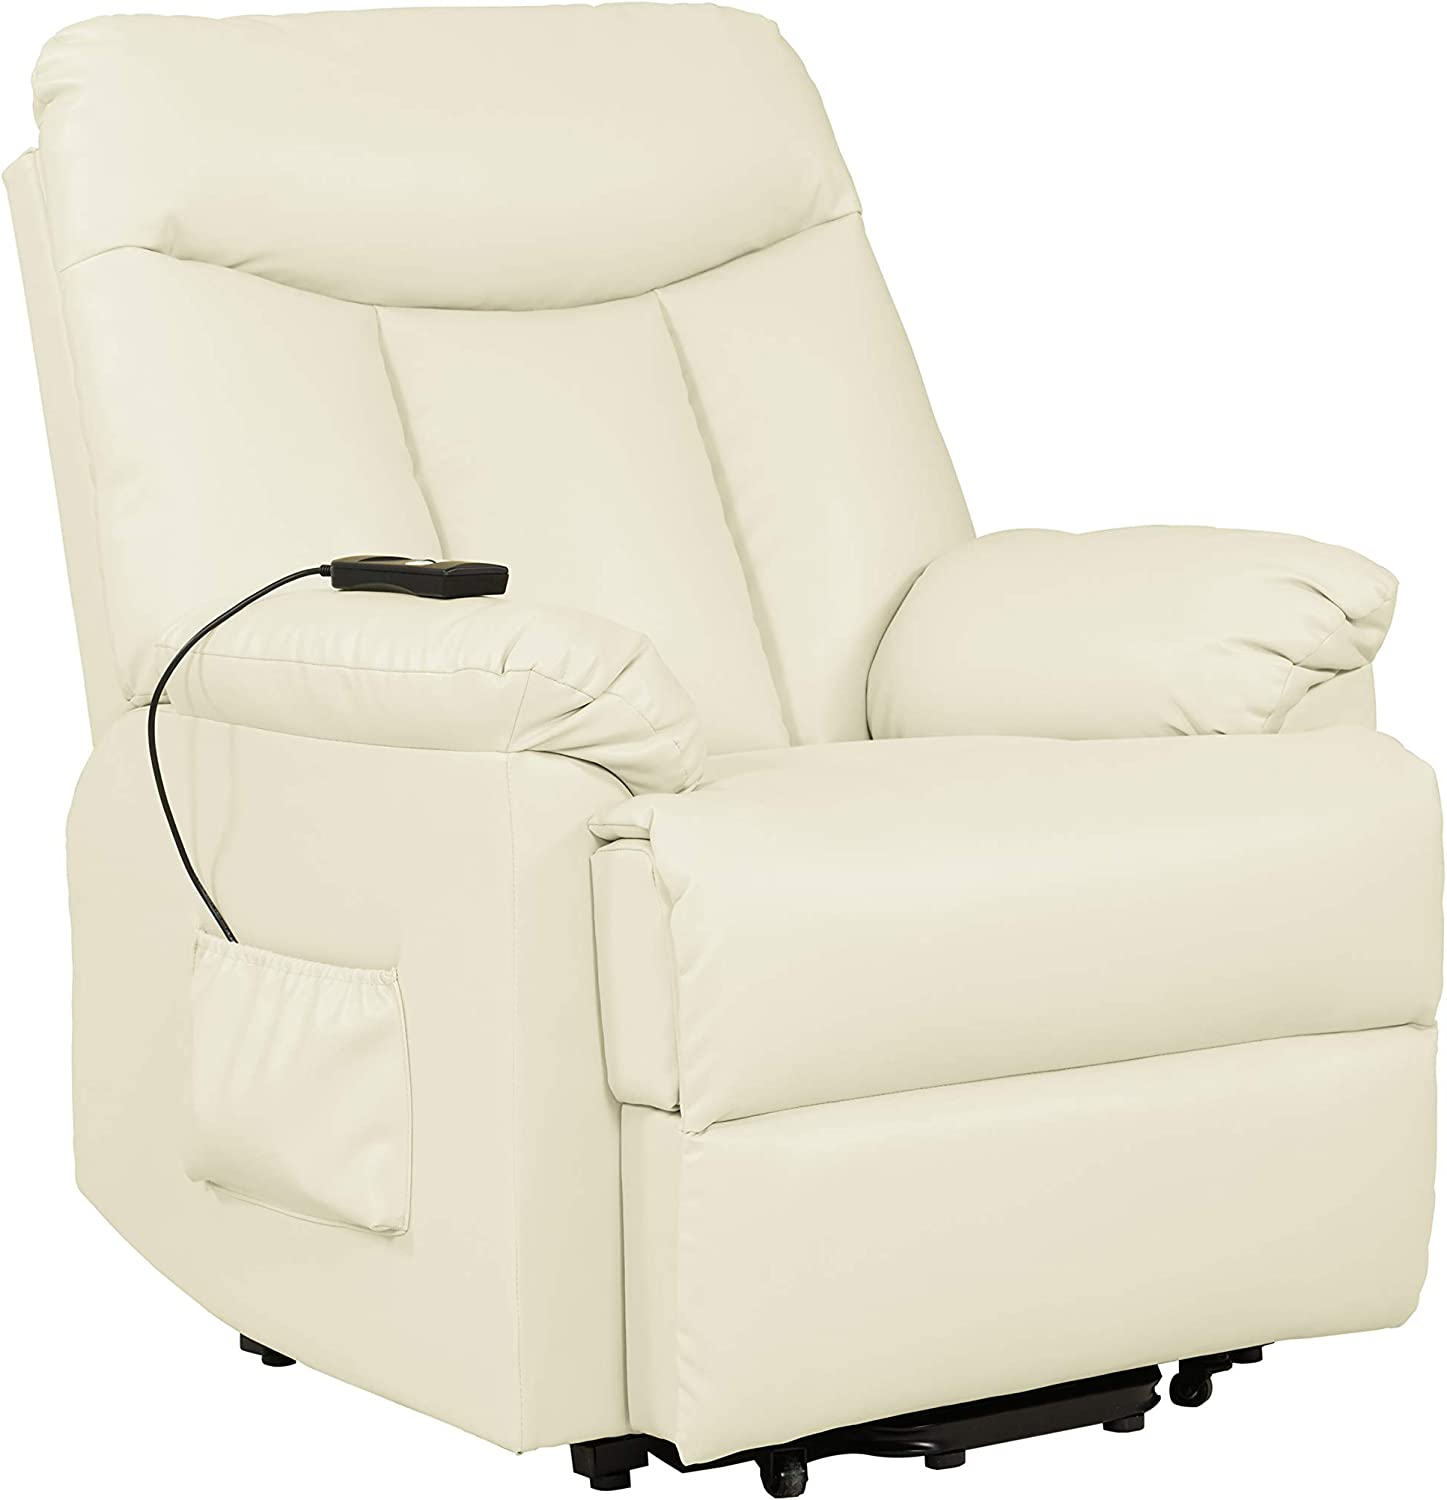 71 fuMdTseL. AC SL1500 - What Is The Best Sofa For Back Pain Sufferers - ChairPicks